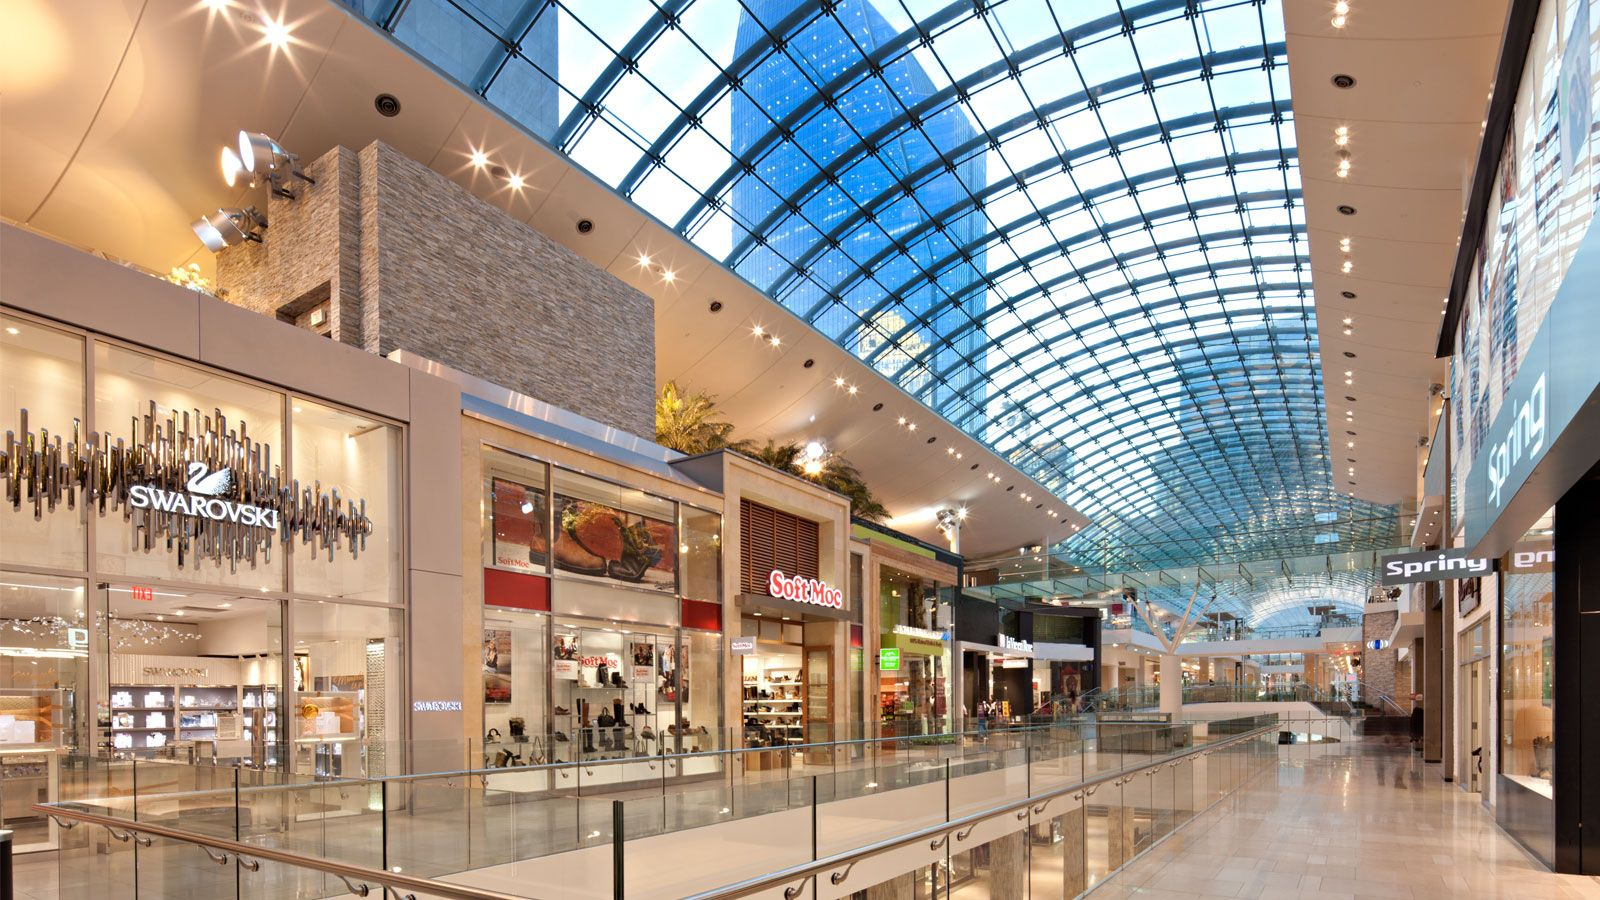 Greater than 60, m 2. The following is a list of Canada's largest enclosed shopping malls, by reported total retail floor space, or gross leasable area (GLA) with 60, square metres (, sq ft) and over. In cases where malls have equal area, they are further ranked by the number of stores.